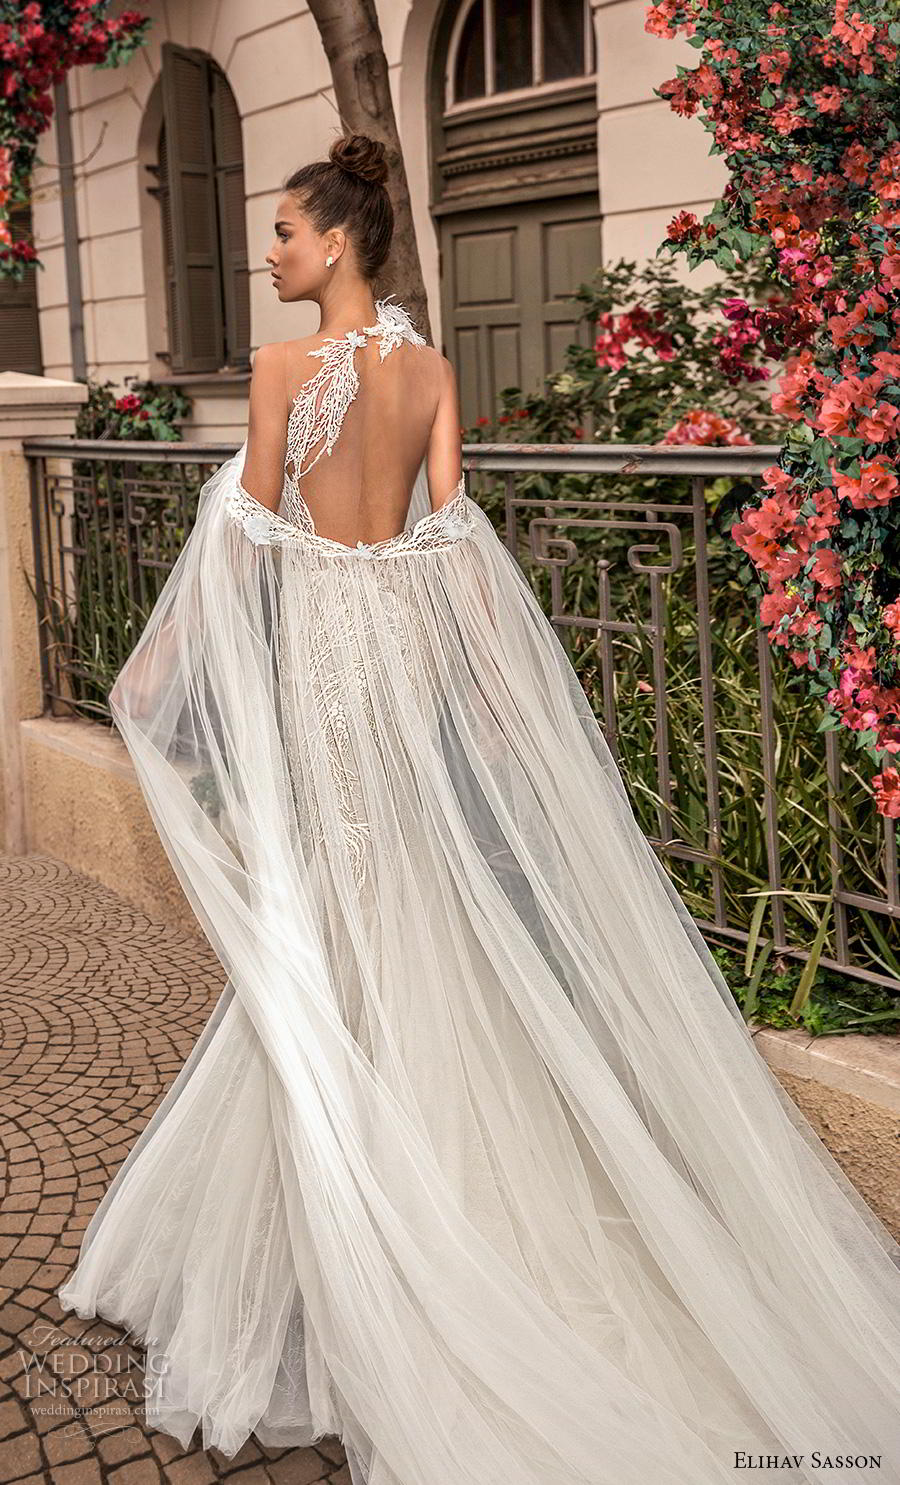 elihav sasson 2019 bridal sleeveless halter neck heavily embellished bodice elegant mermaid wedding dress keyhole back chapel train (19) bv